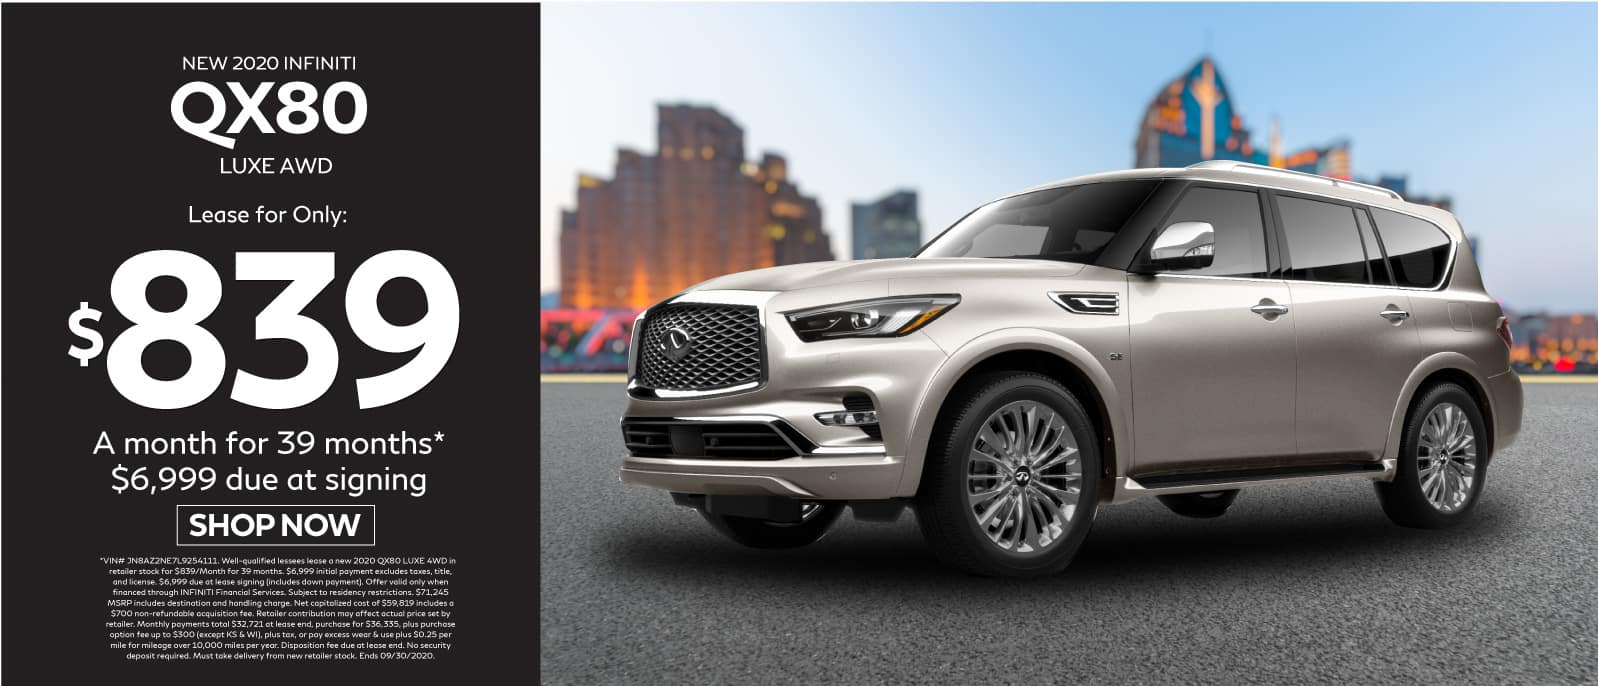 2020 INFINITI QX80 lease for $839 a month for 39 months $6999 due at signing. Shop Now.